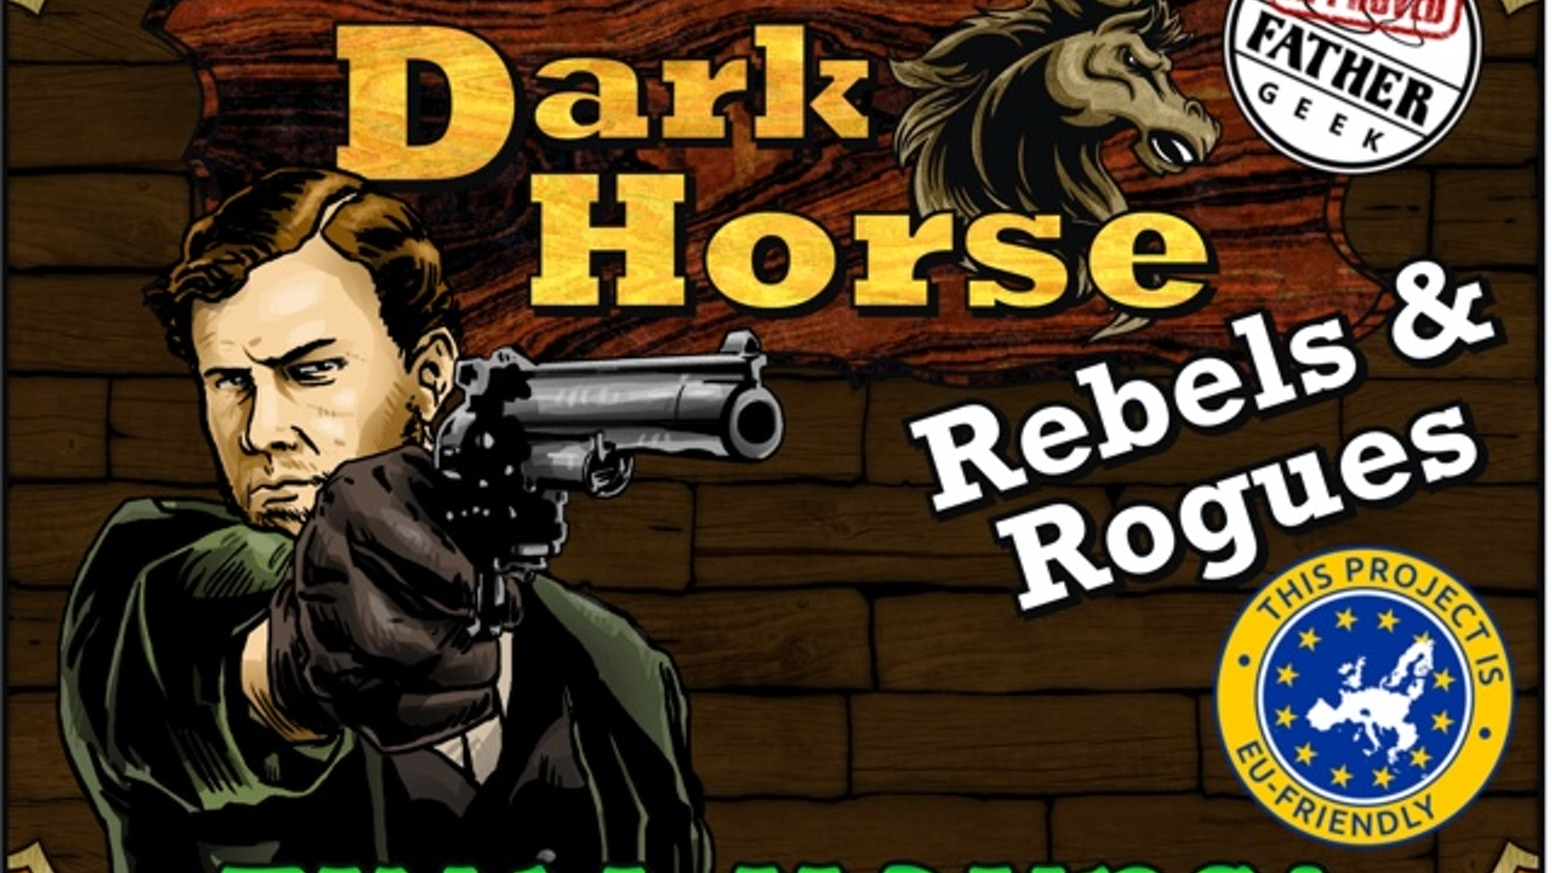 Players build technologies and take sides with notorious gunfighters and heroes of the Wild West in this expansion to Dark Horse.